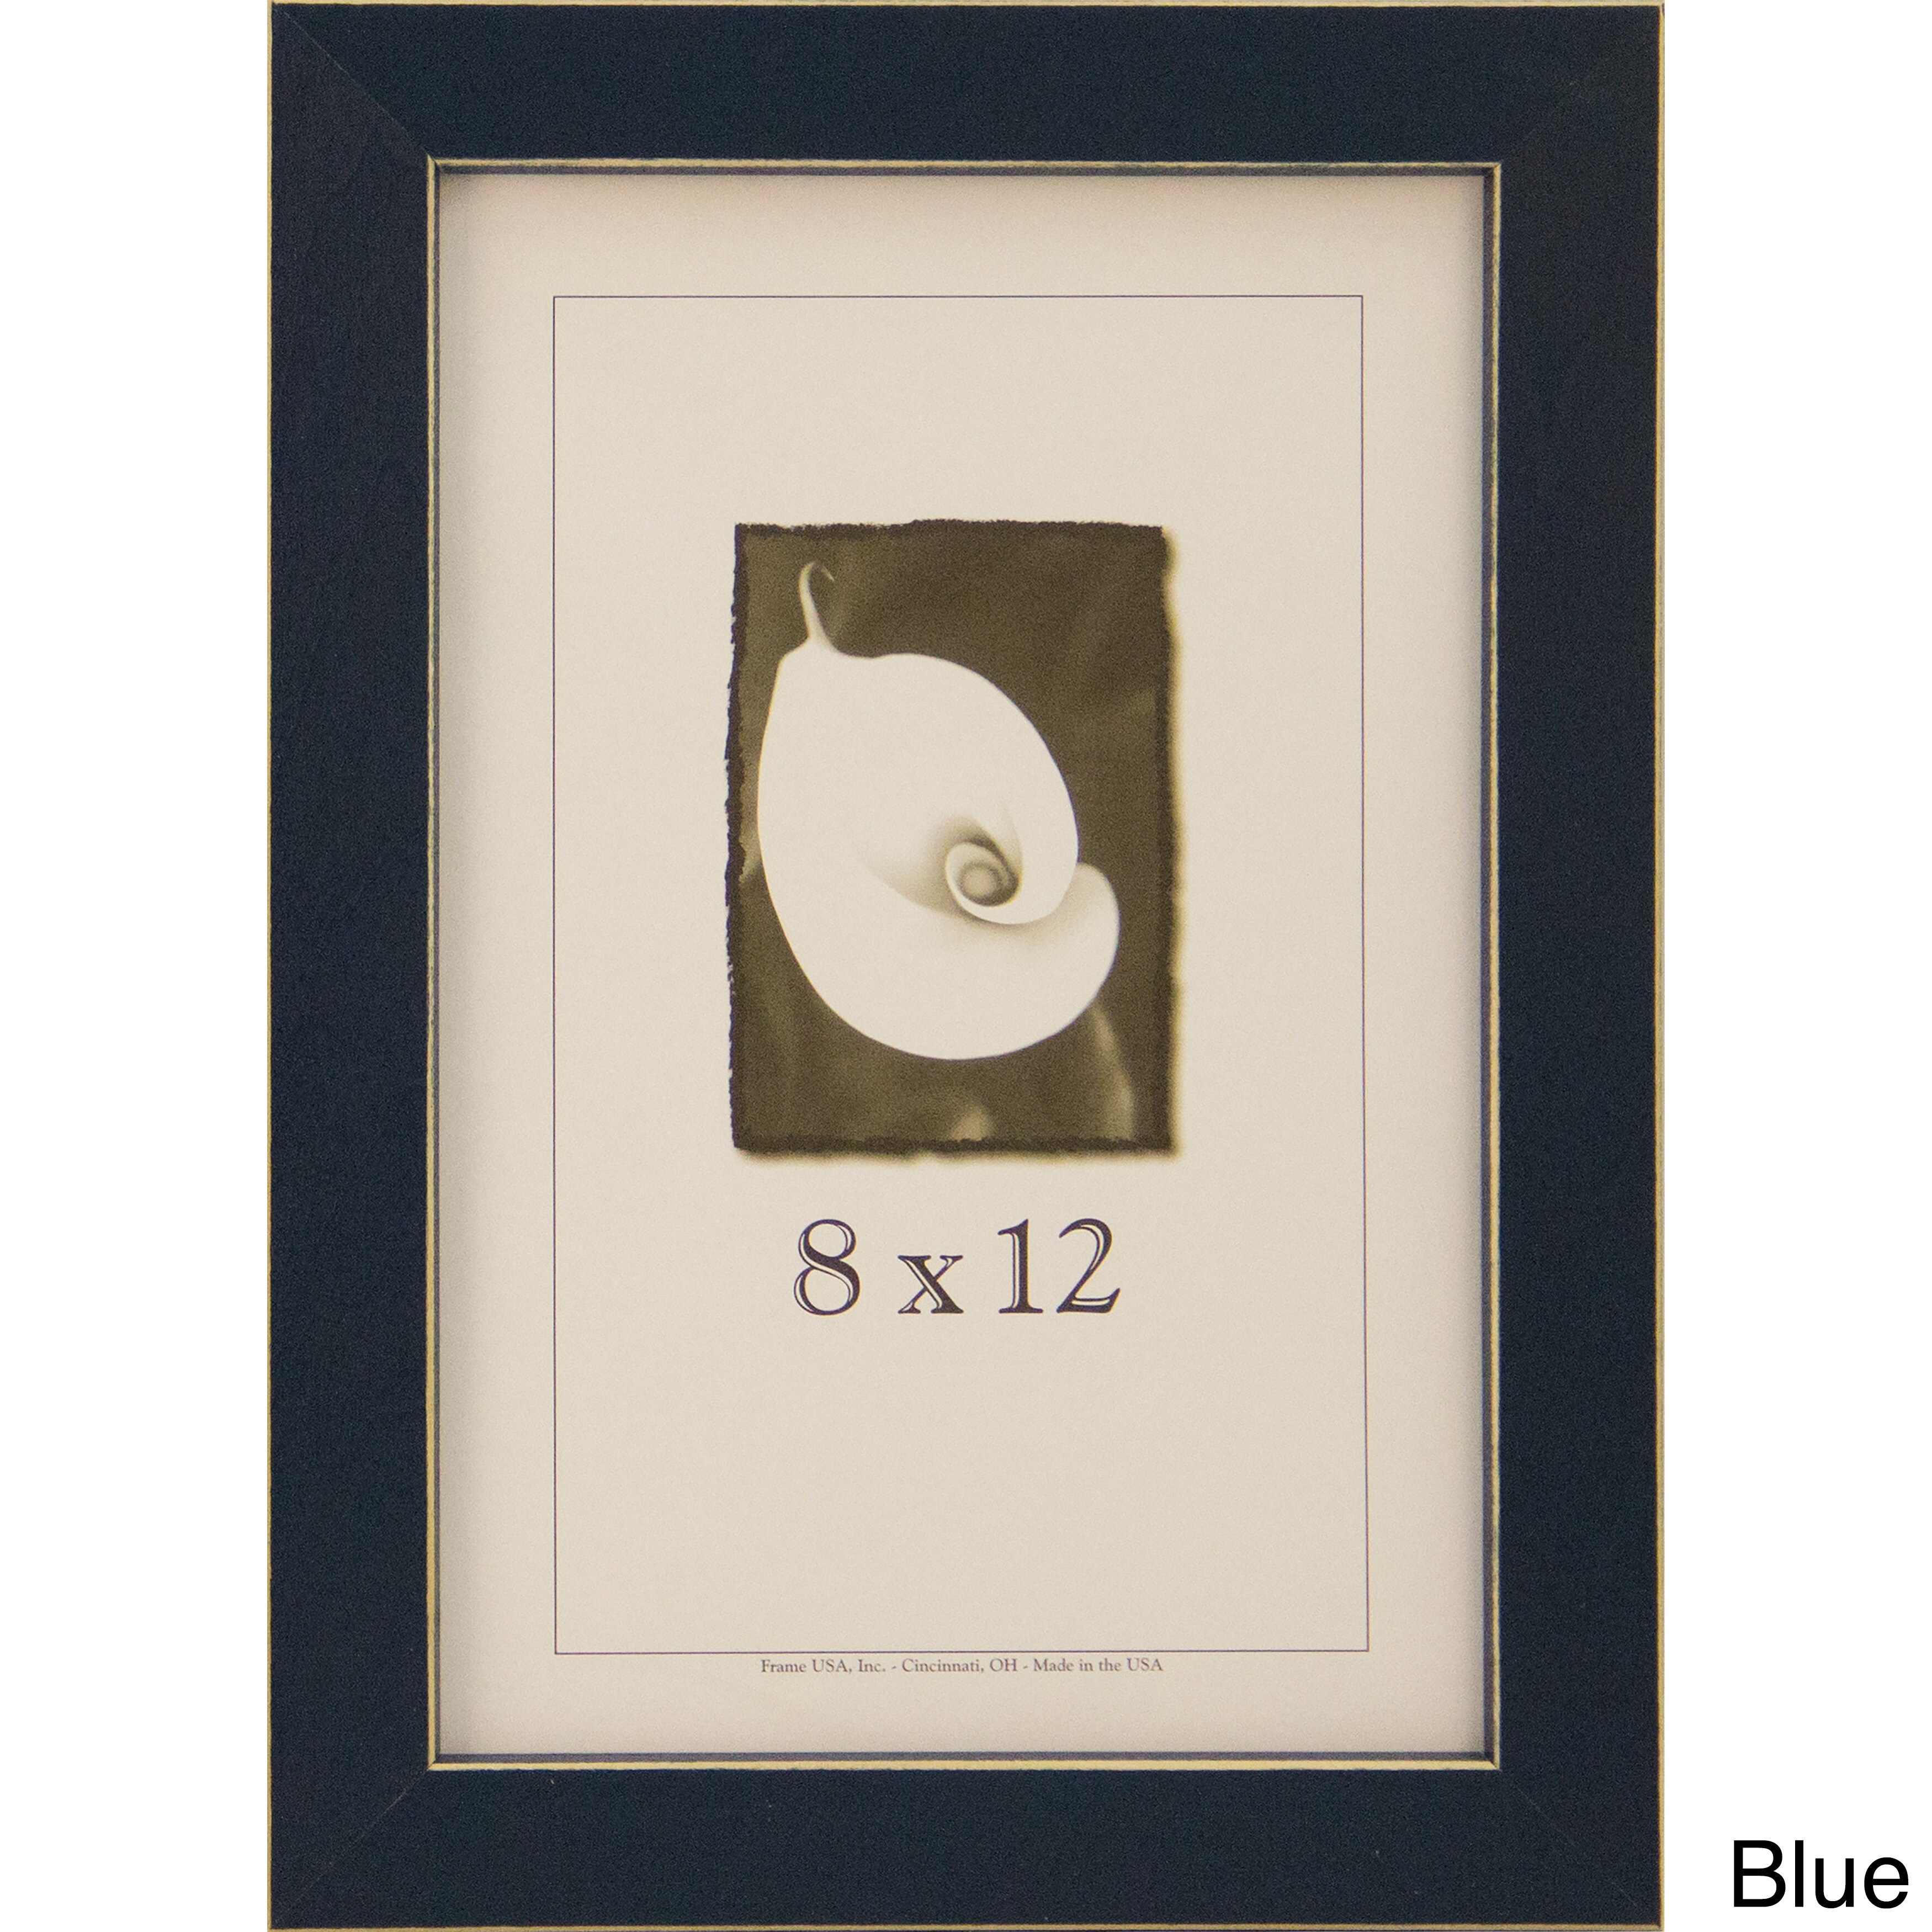 Buy Blue Picture Frames & Photo Albums Online at Overstock.com | Our ...